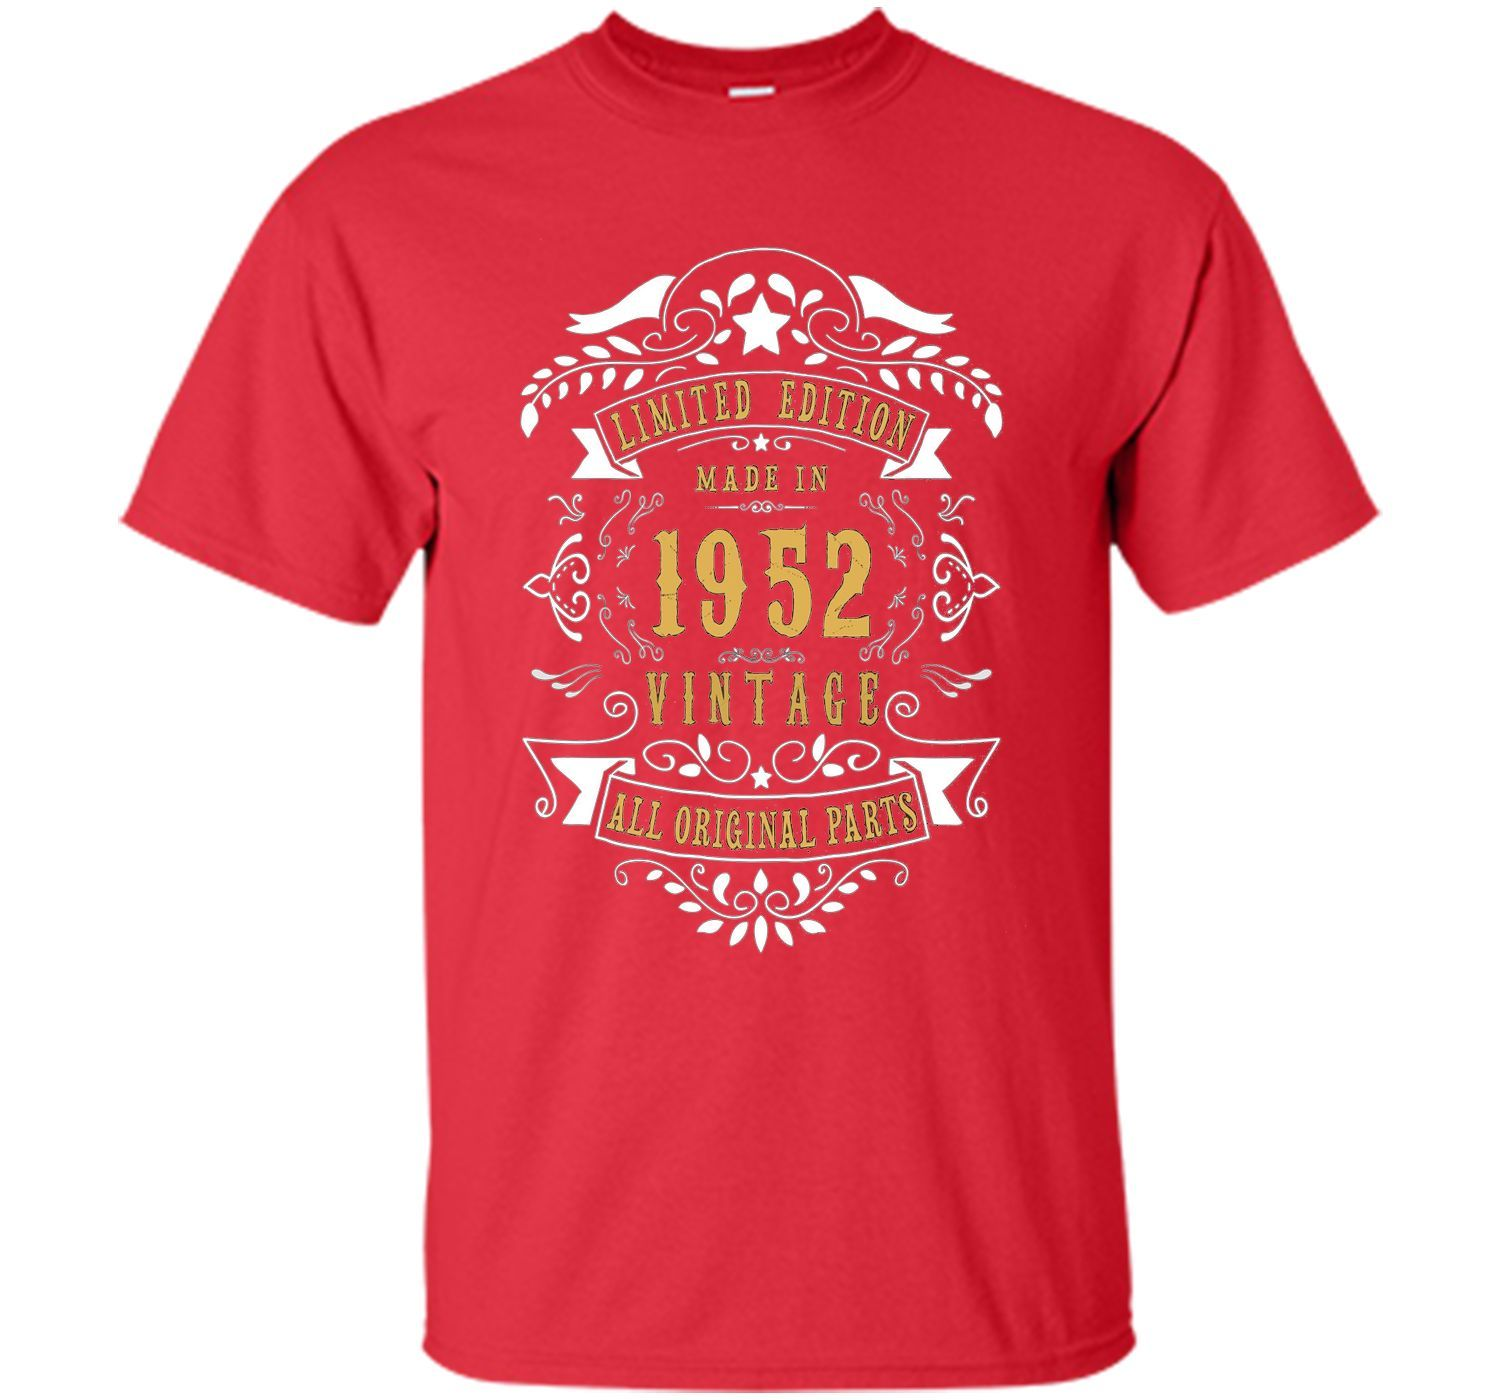 65 Years Old Made Birth In 1952 65th Birthday Gift T Shirt